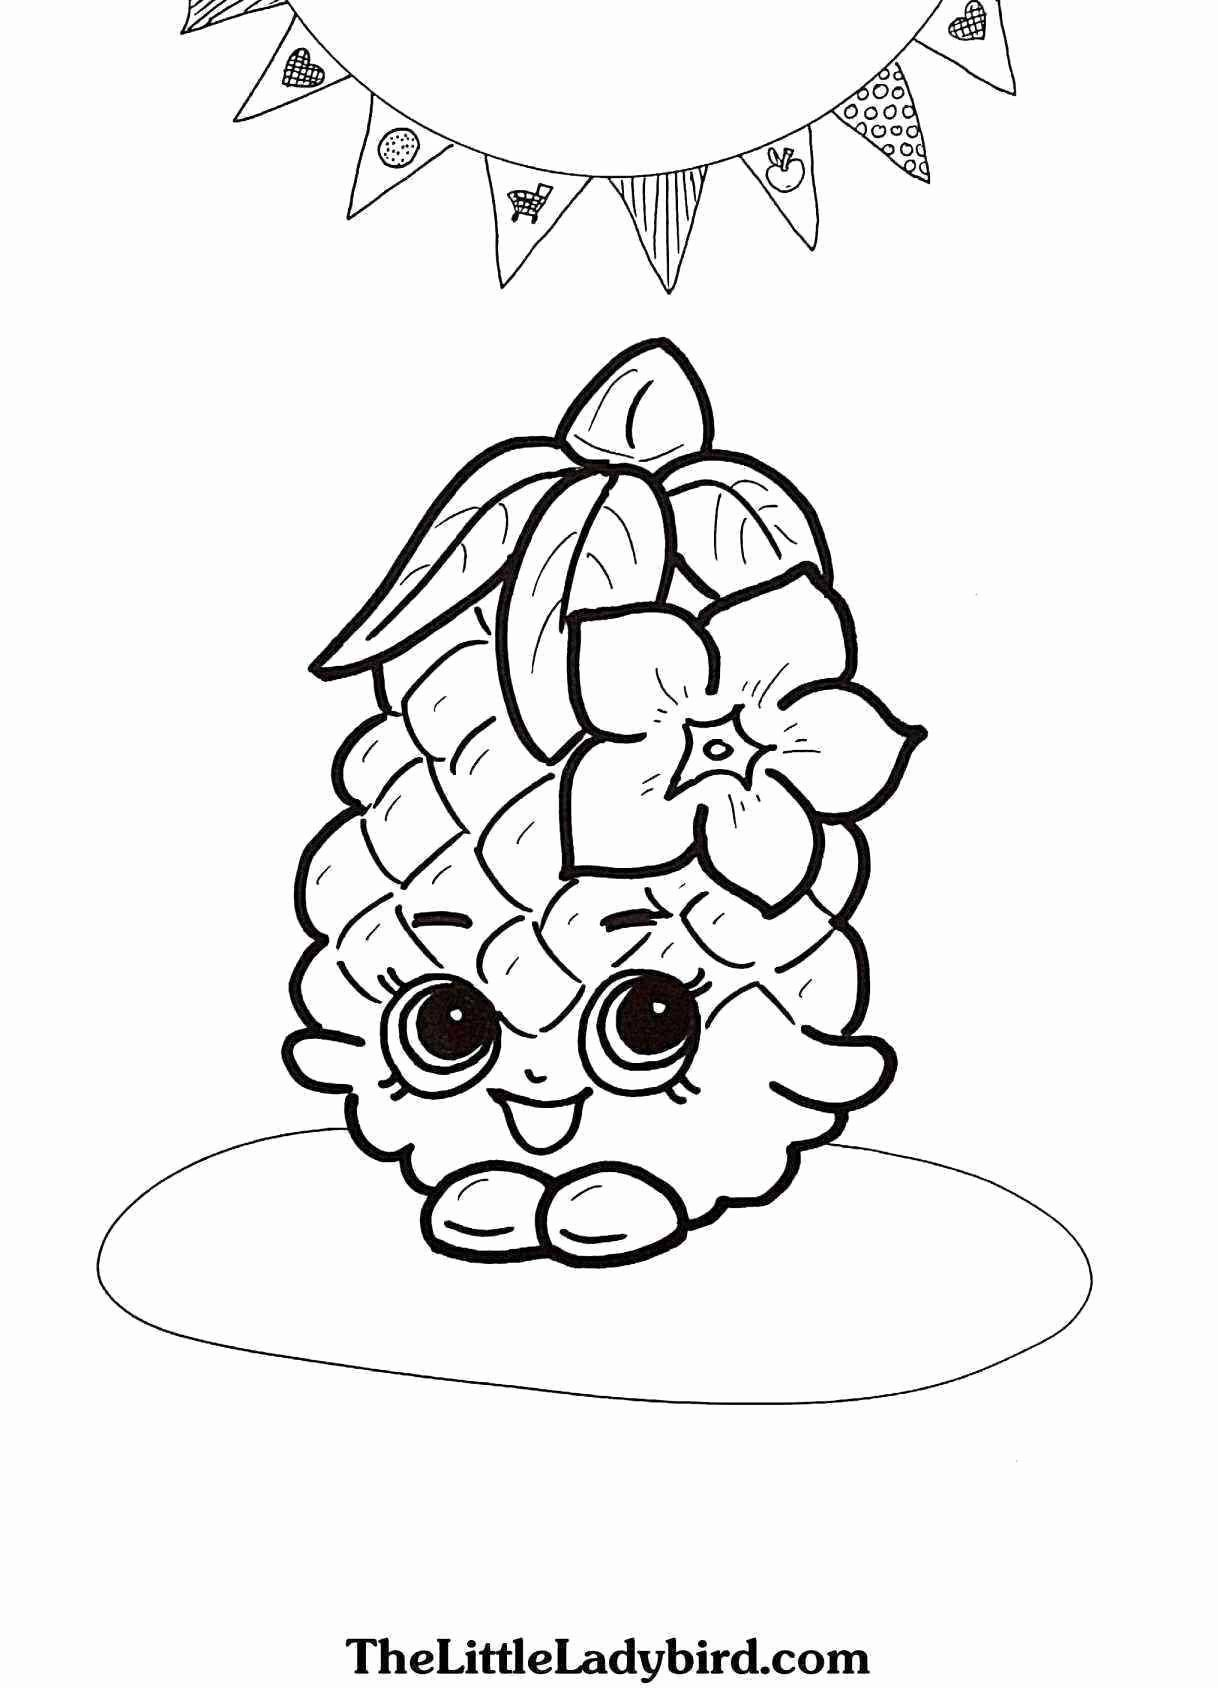 White House Coloring Pages Printable Unique White House Coloring